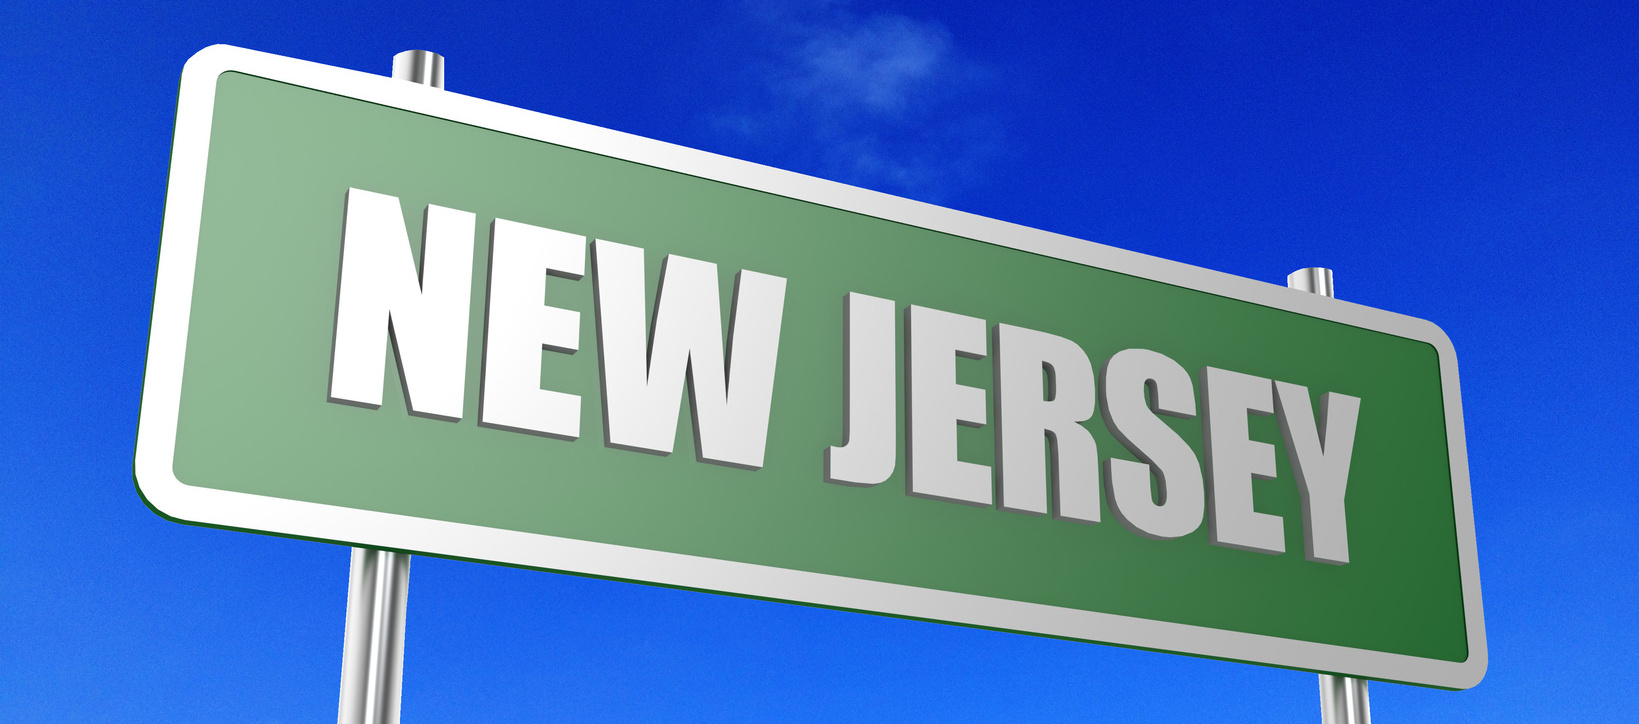 Starting a Business in New Jersey